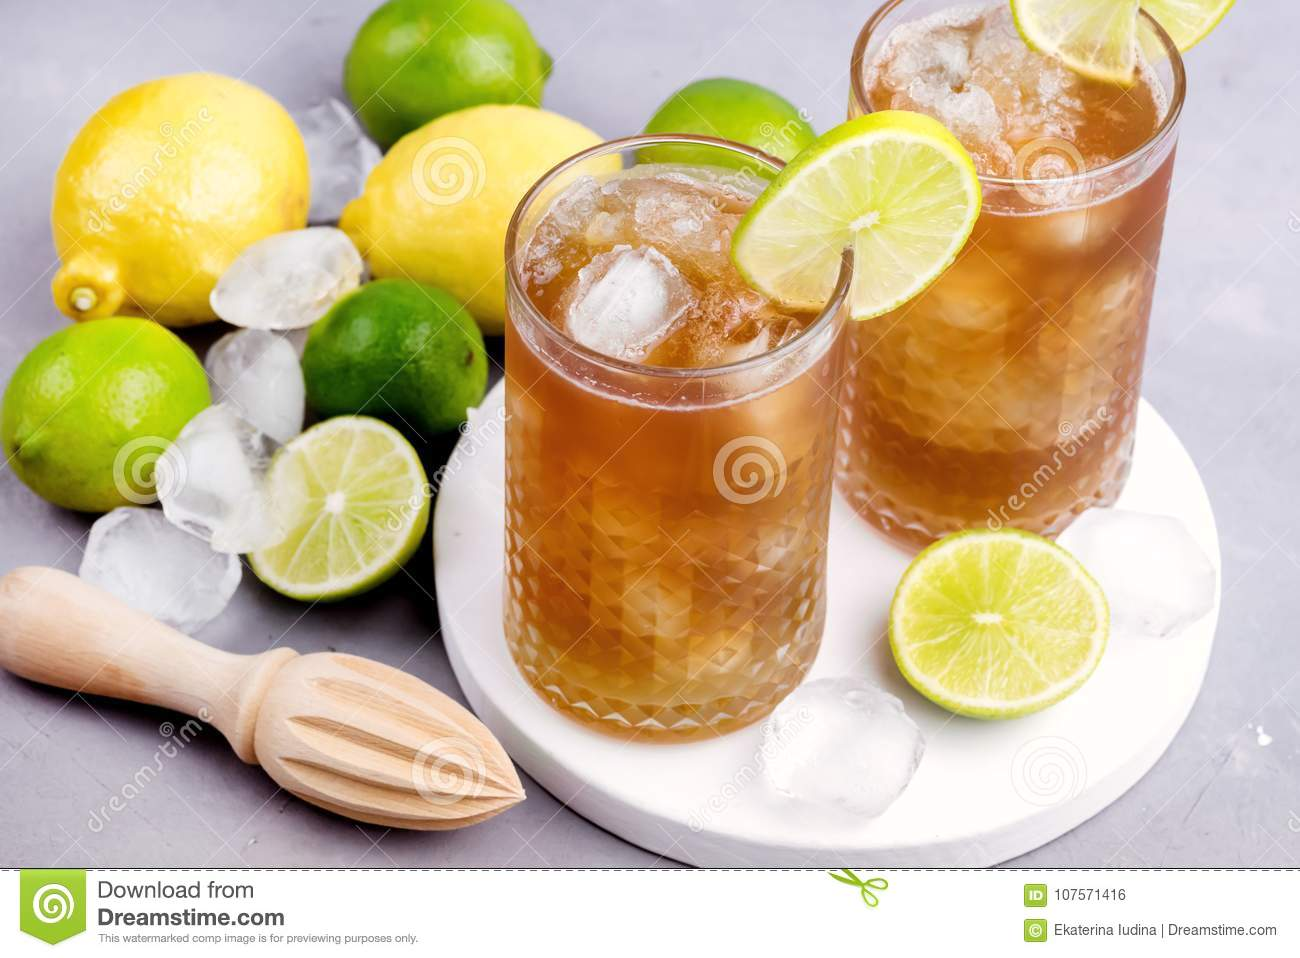 Glass of Tsasty Ice Tea with Ice Cubes and Citrus Cold Summ er Beverage Wooden Squeezer and Raw Lemons and Limes on Background